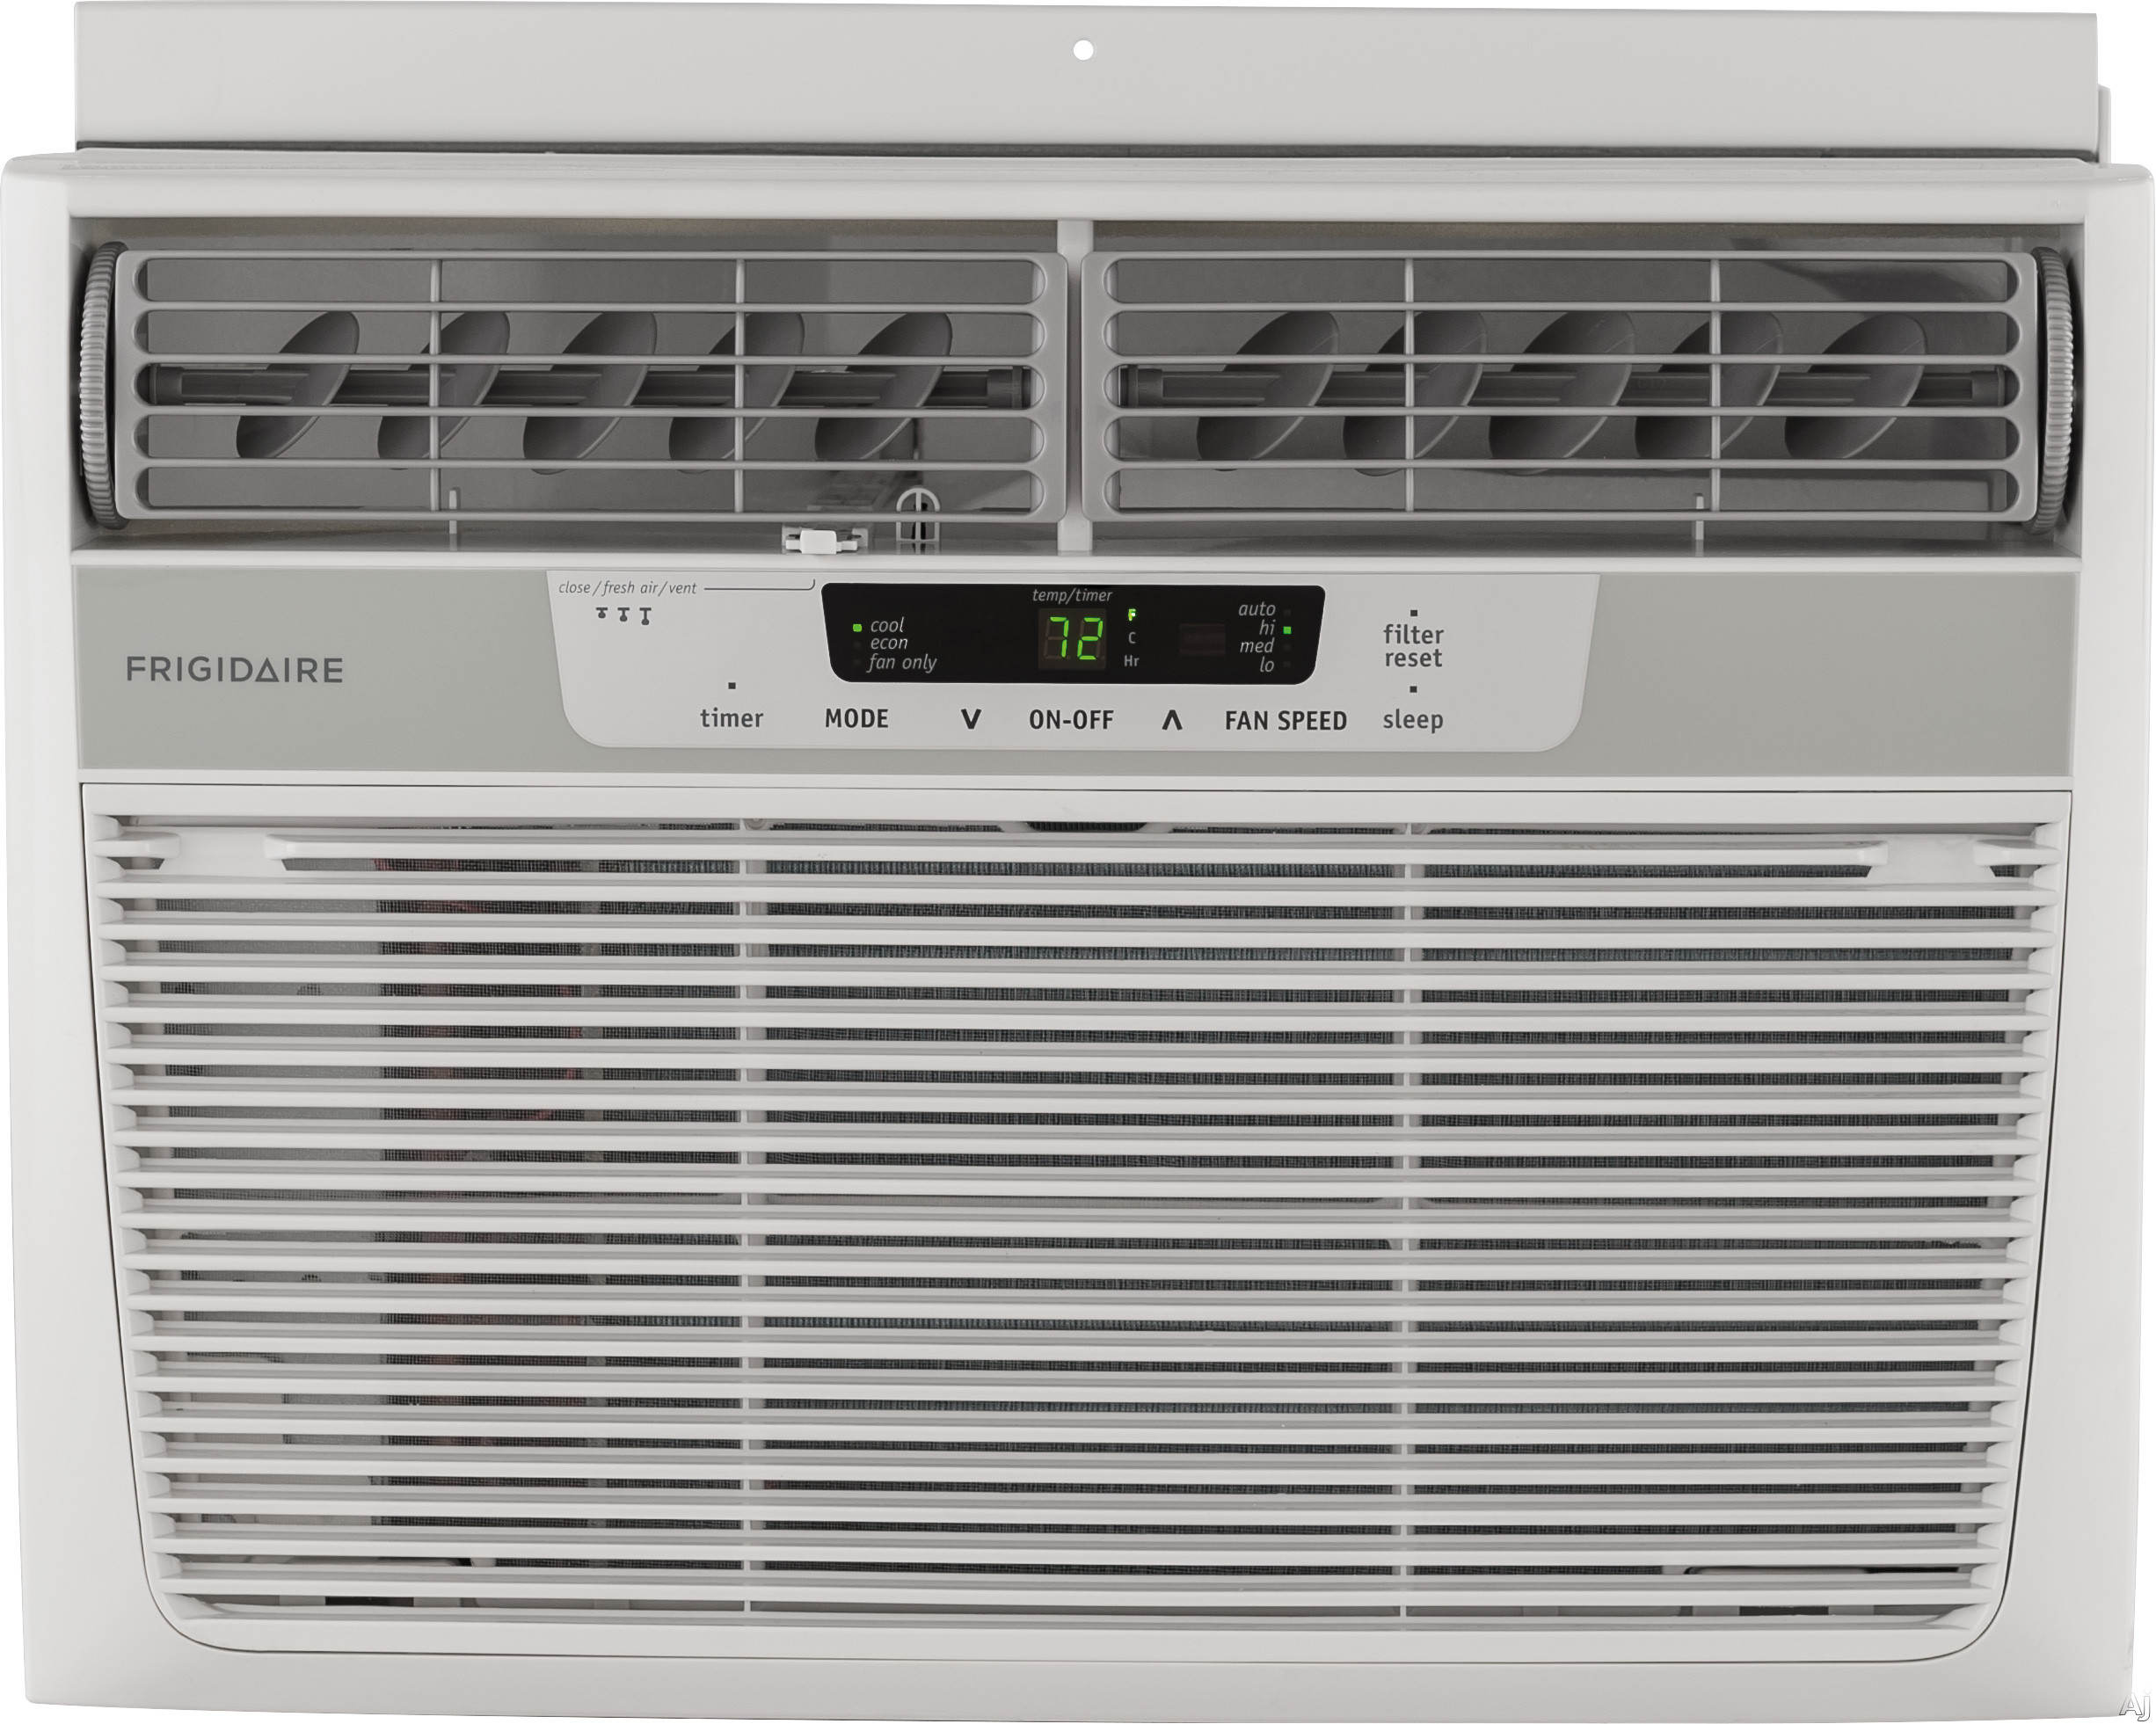 Frigidaire FFRA1222R1 12,000 BTU Window Air Conditioner with 10.9 EER, R-410A Refrigerant, 3.8 Pts/Hr Dehumidification, 550 sq. ft. Cooling Area, Auto Restart and Remote Control FFRA1222R1